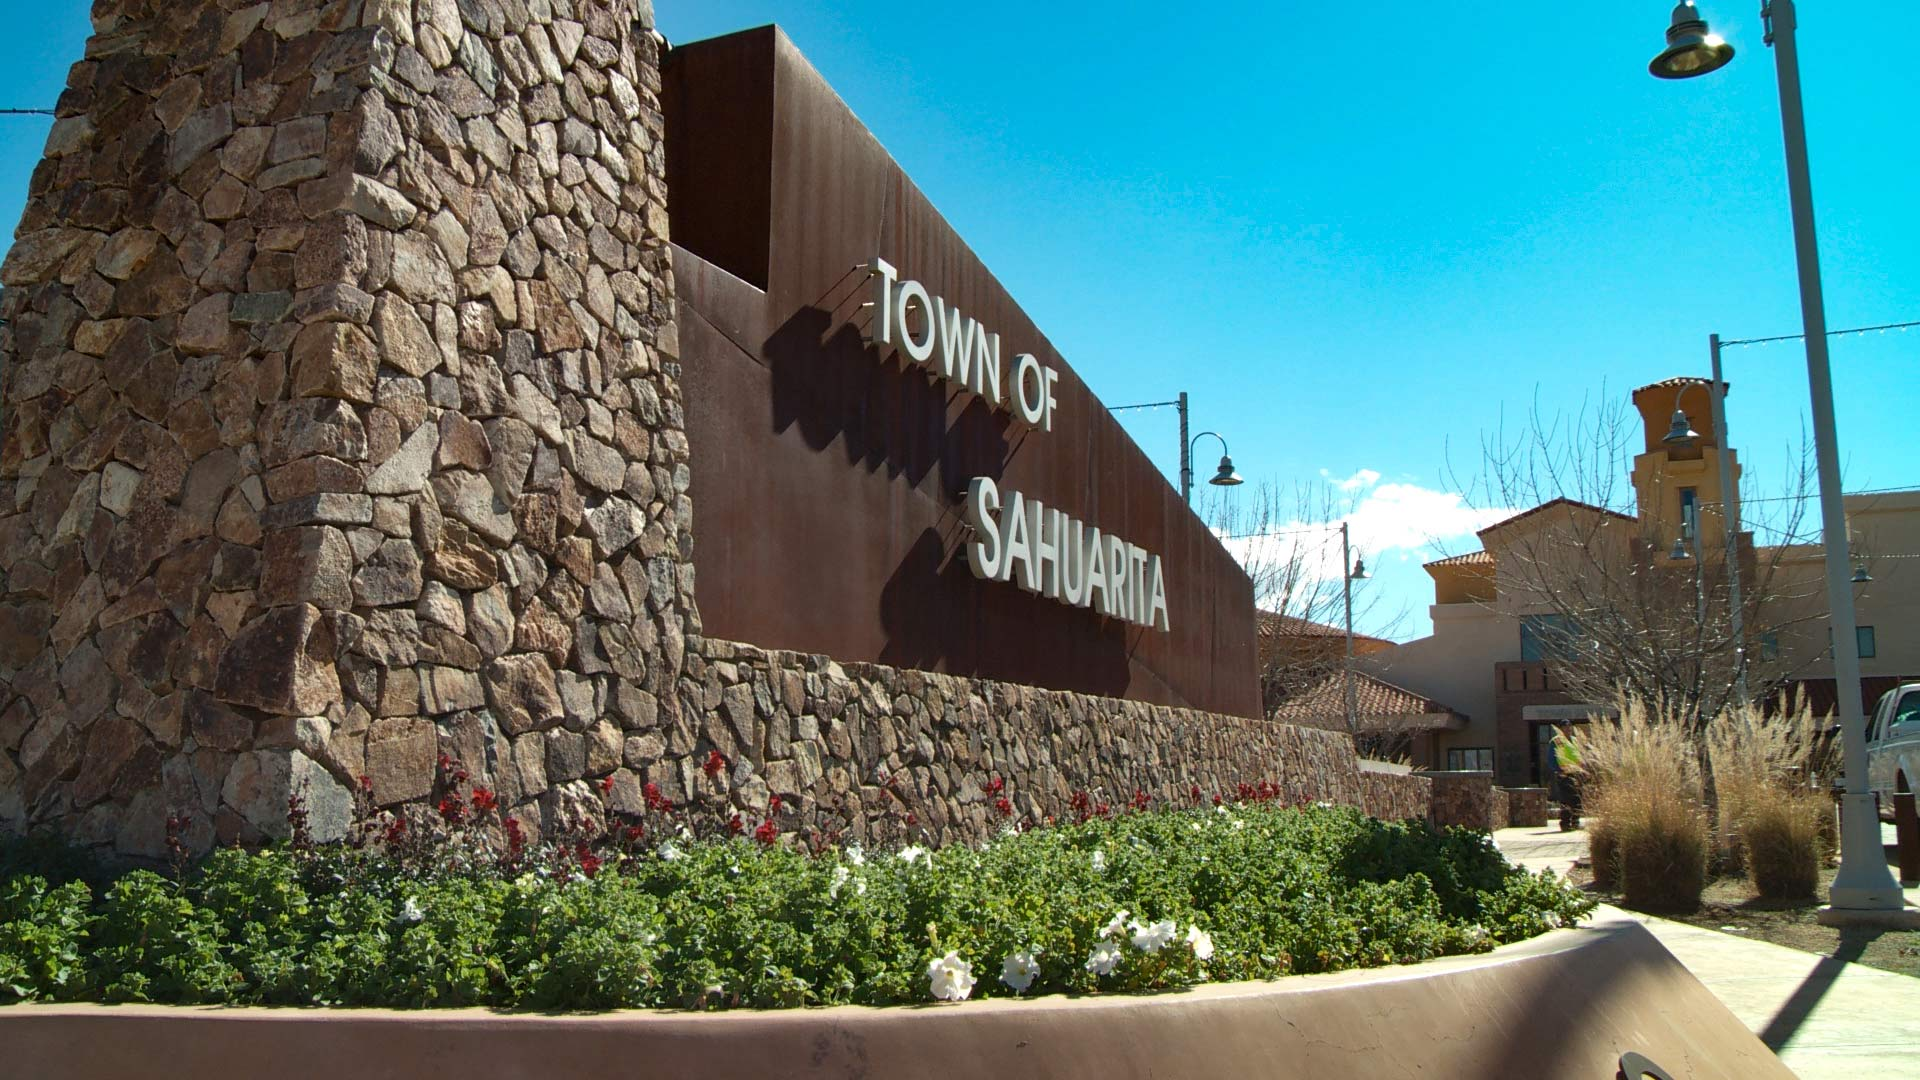 Sahuarita town sign hero